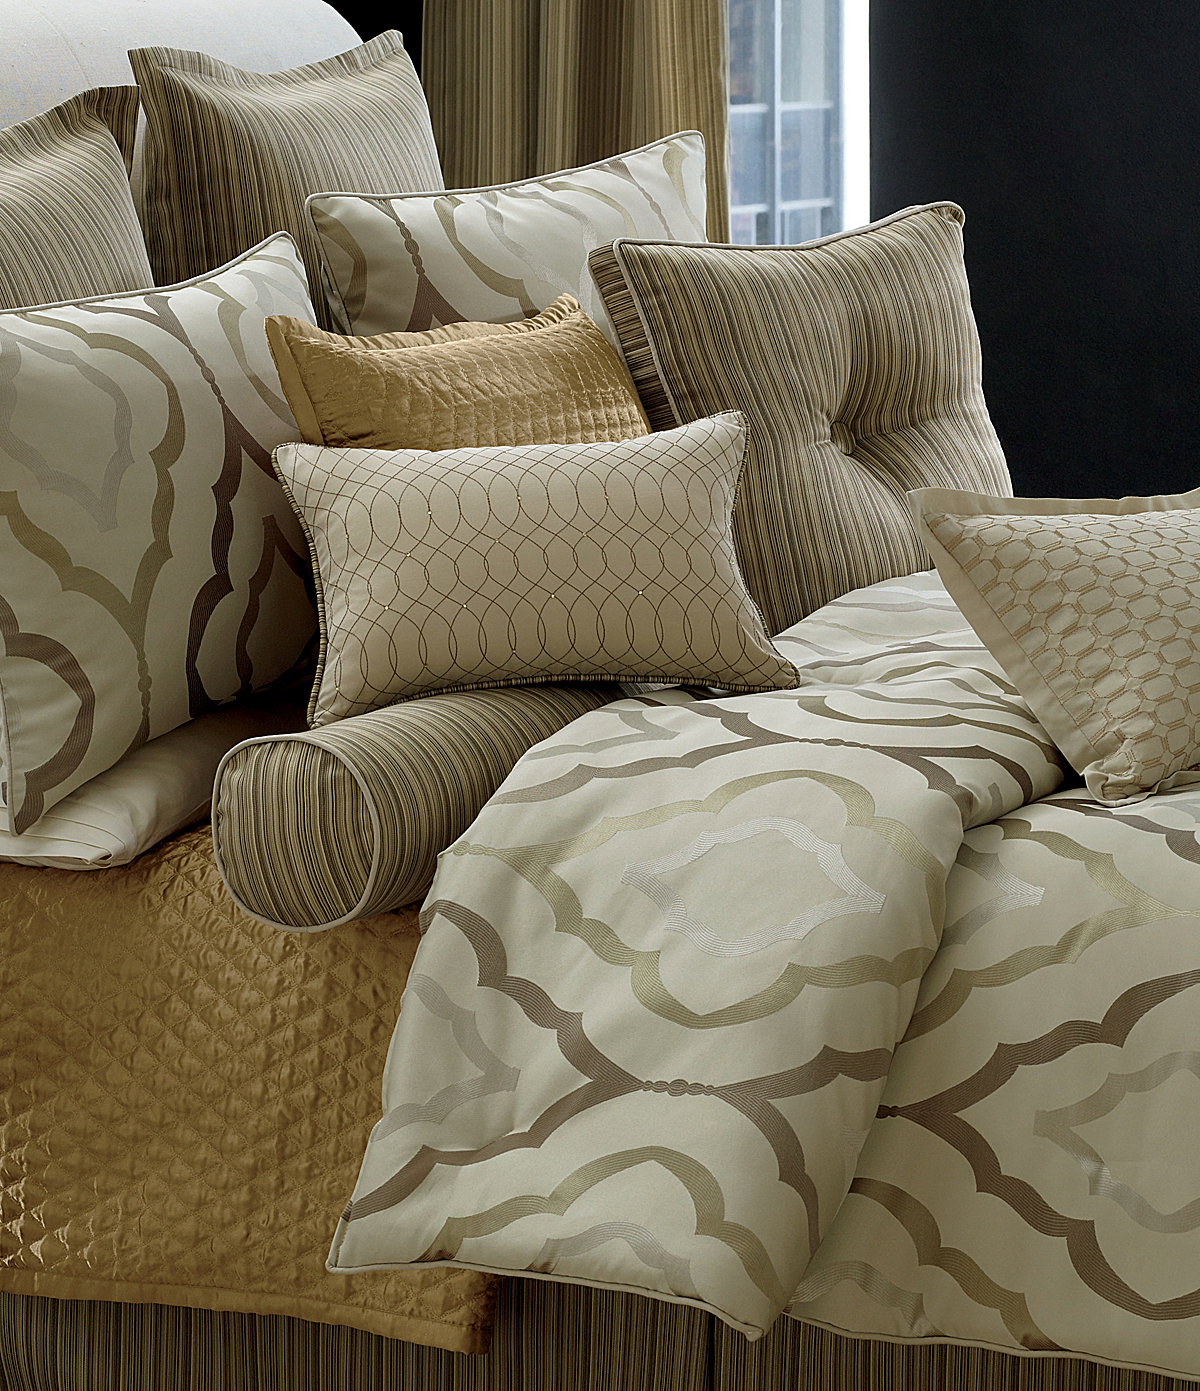 2013 Candice Olson Bedding Collection From Dillard 39 S